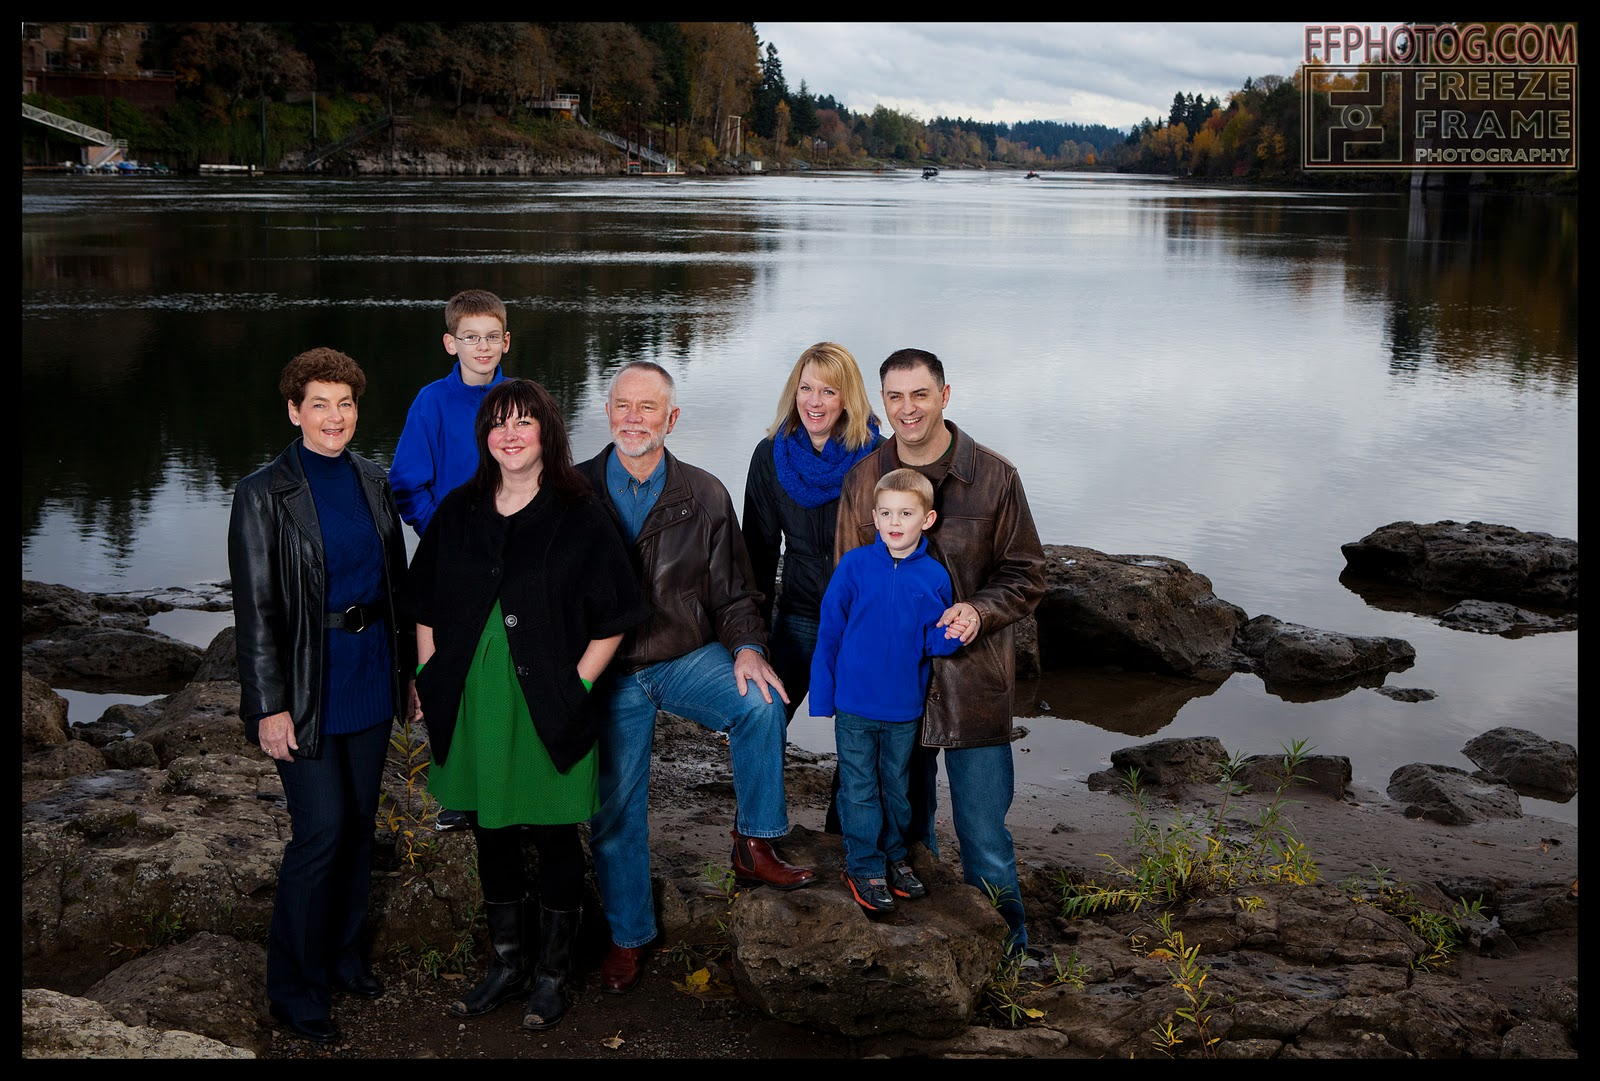 Portland Family Photography – Freeze Frame Photography – Portland ...